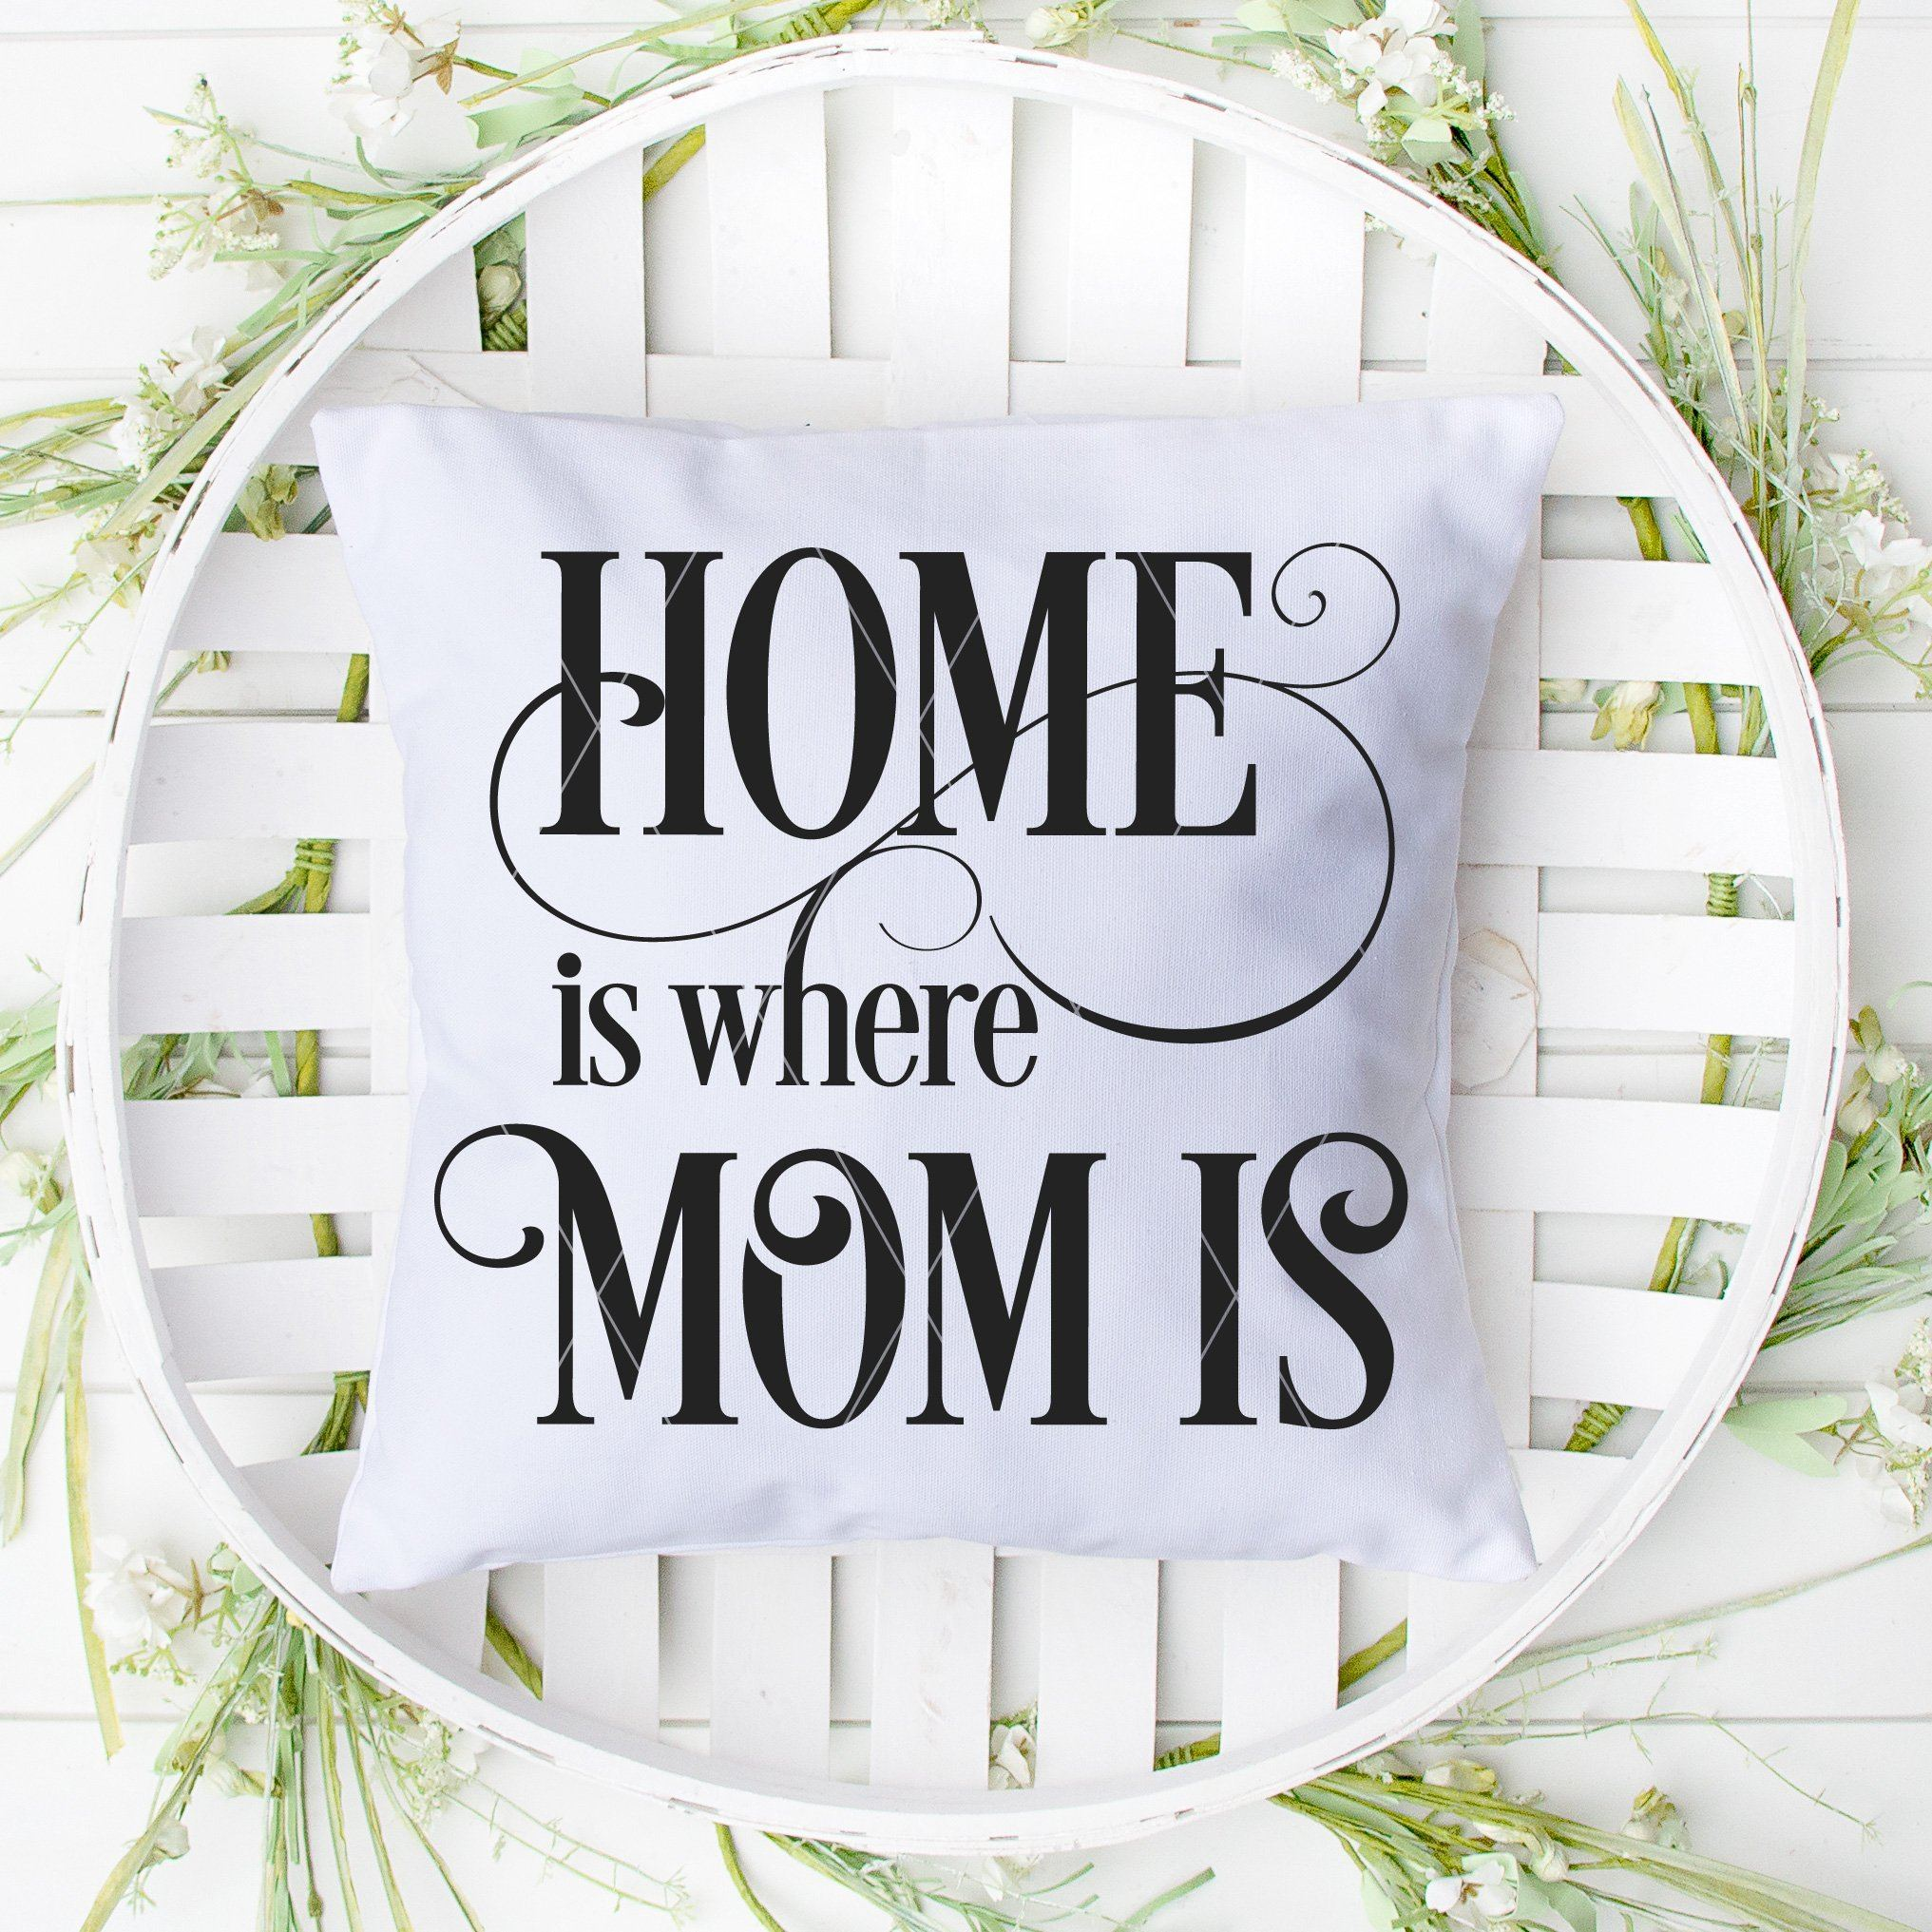 Home Is Where Mom Is SVG File For Mother's Day - Commercial Use SVG Files